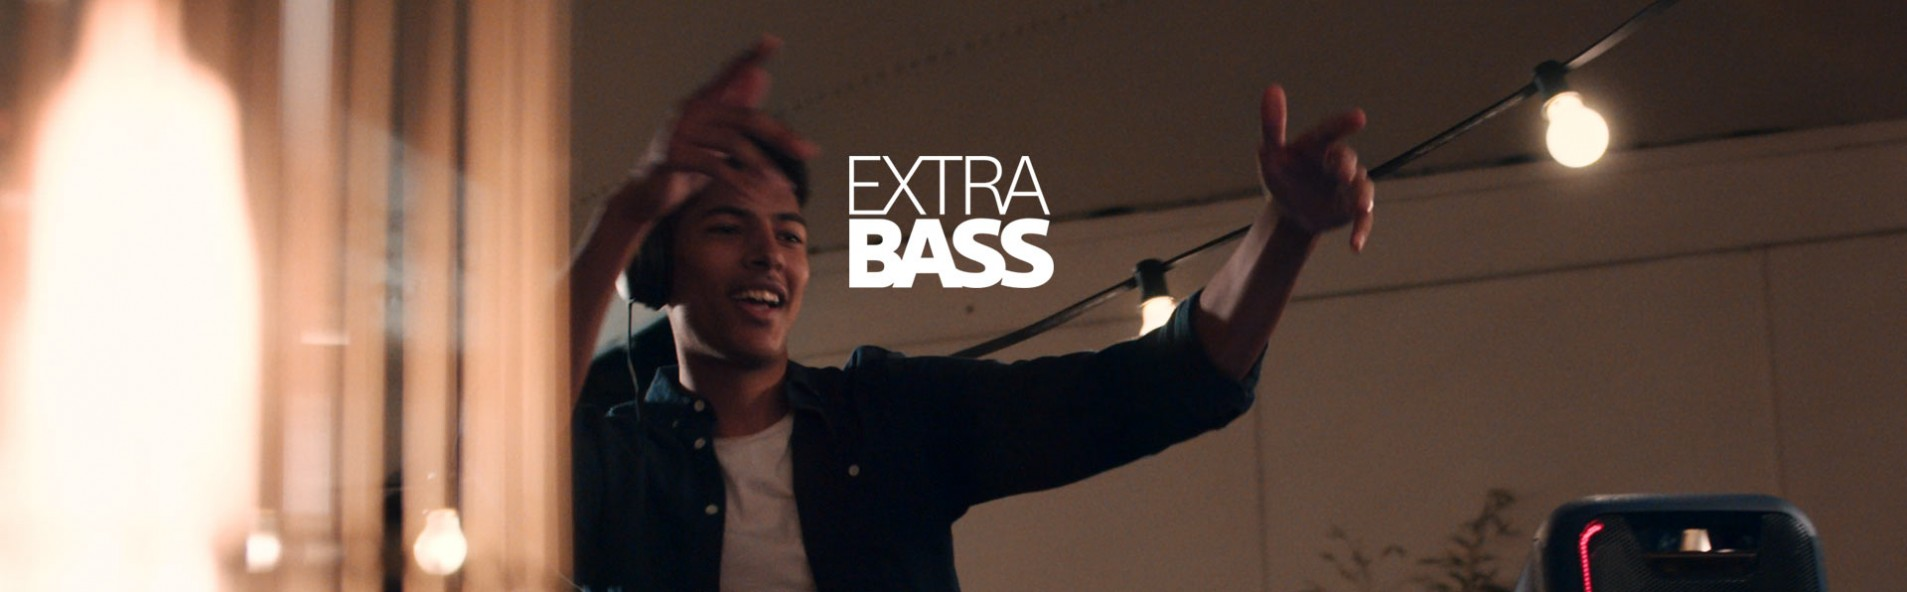 Win a Sony EXTRABASS Package!